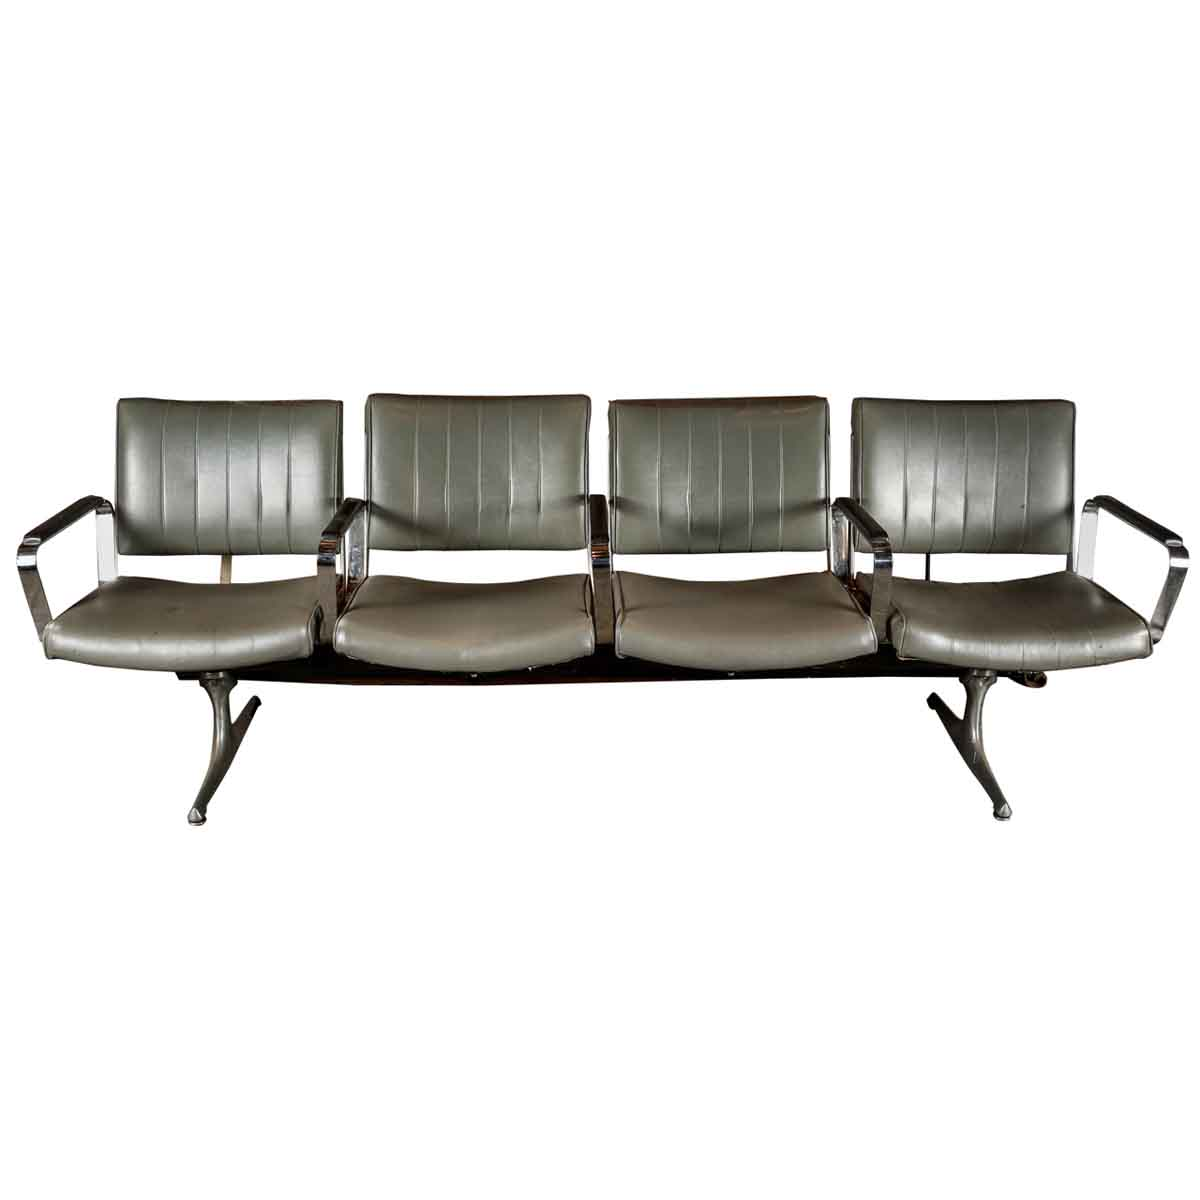 Well-liked Set of Four Retro Style Airport Waiting Area Chairs | Olde Good Things NW42